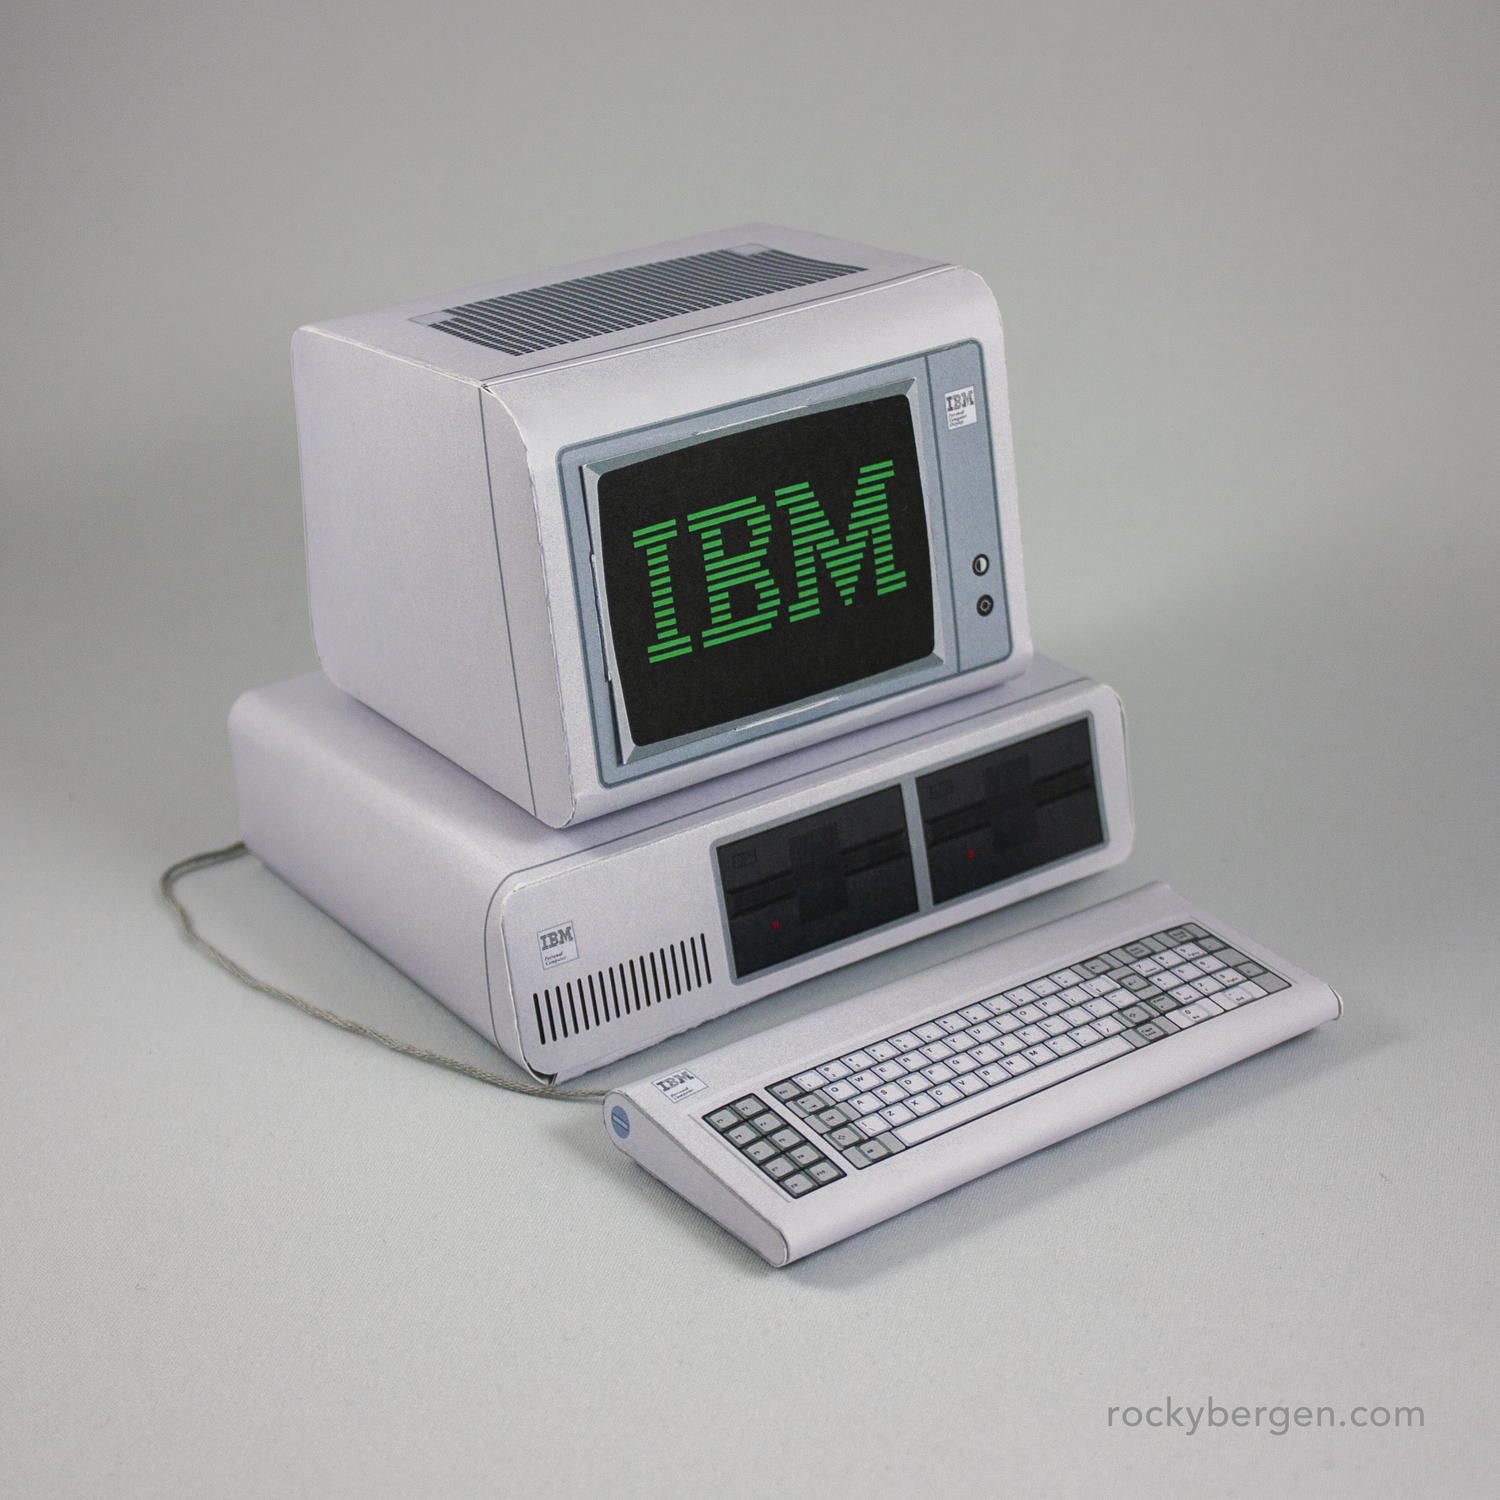 IBM+5150+Personal+Computer